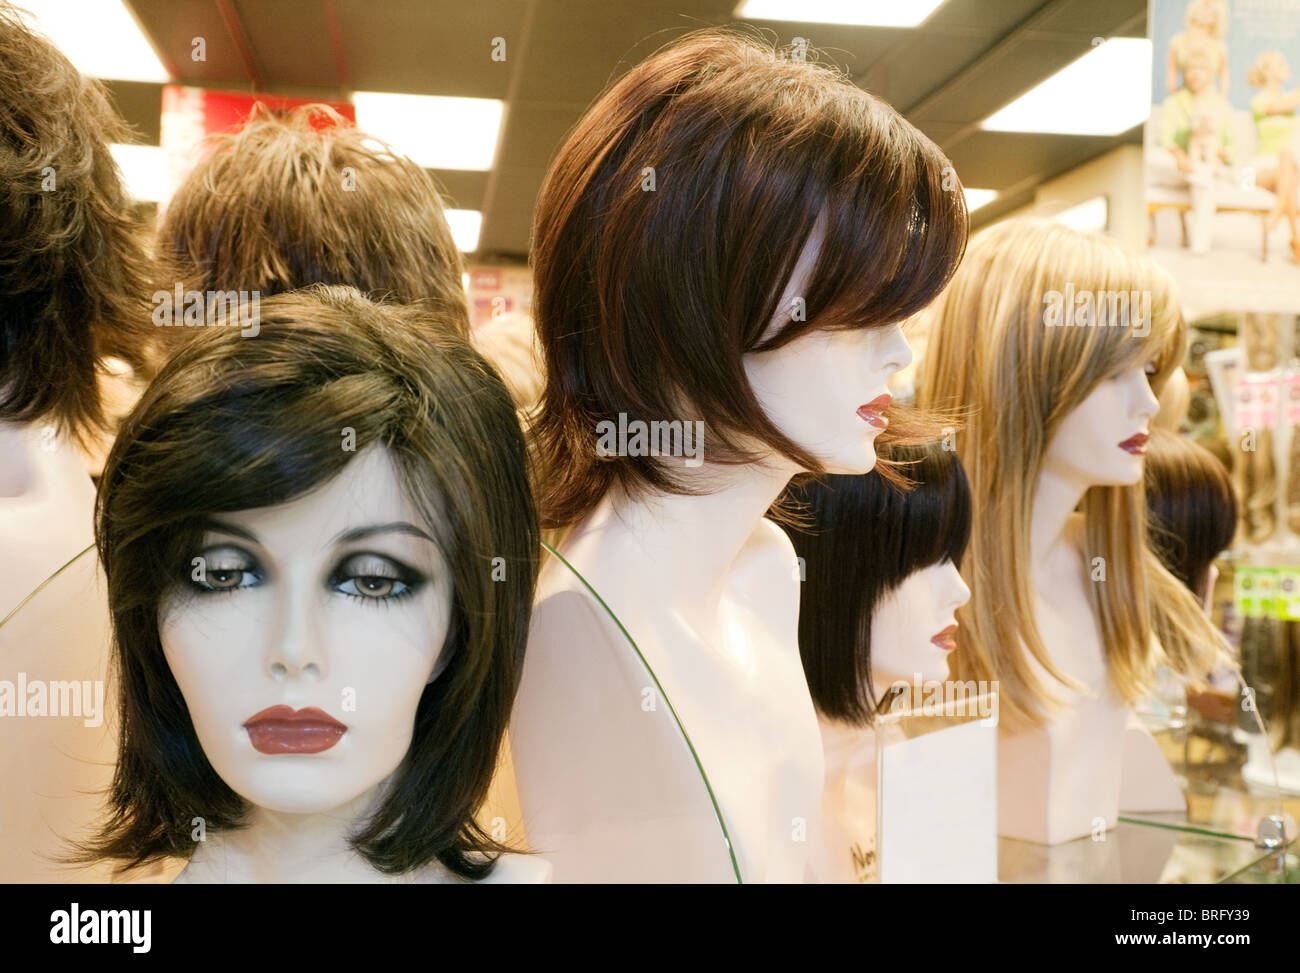 Les mannequins portant des perruques dans un magasin perruque shop window, Centre Commercial de Las Vegas, Las Vegas Photo Stock